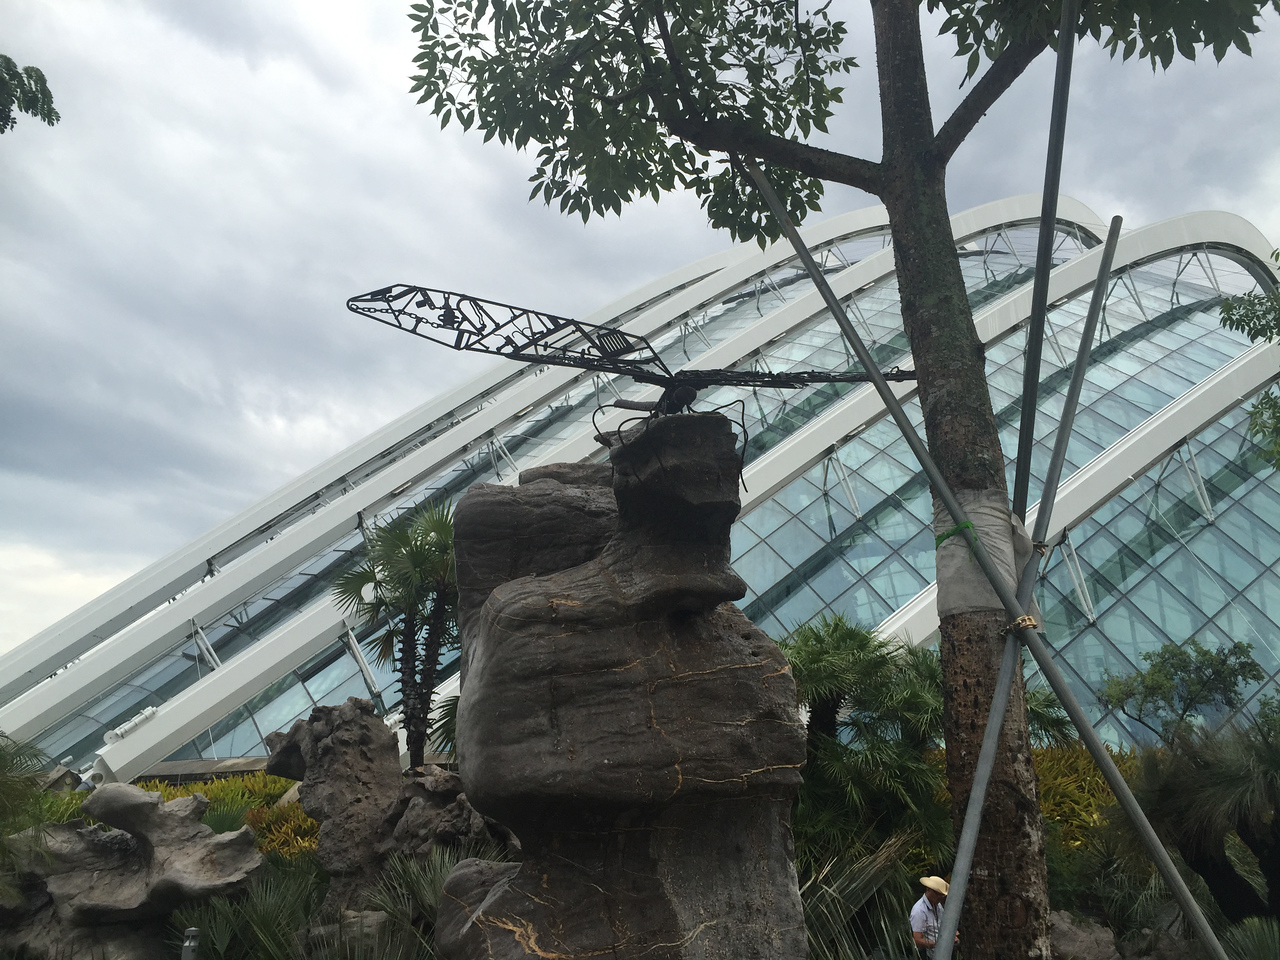 and sculpture and indoor tropical rainforests